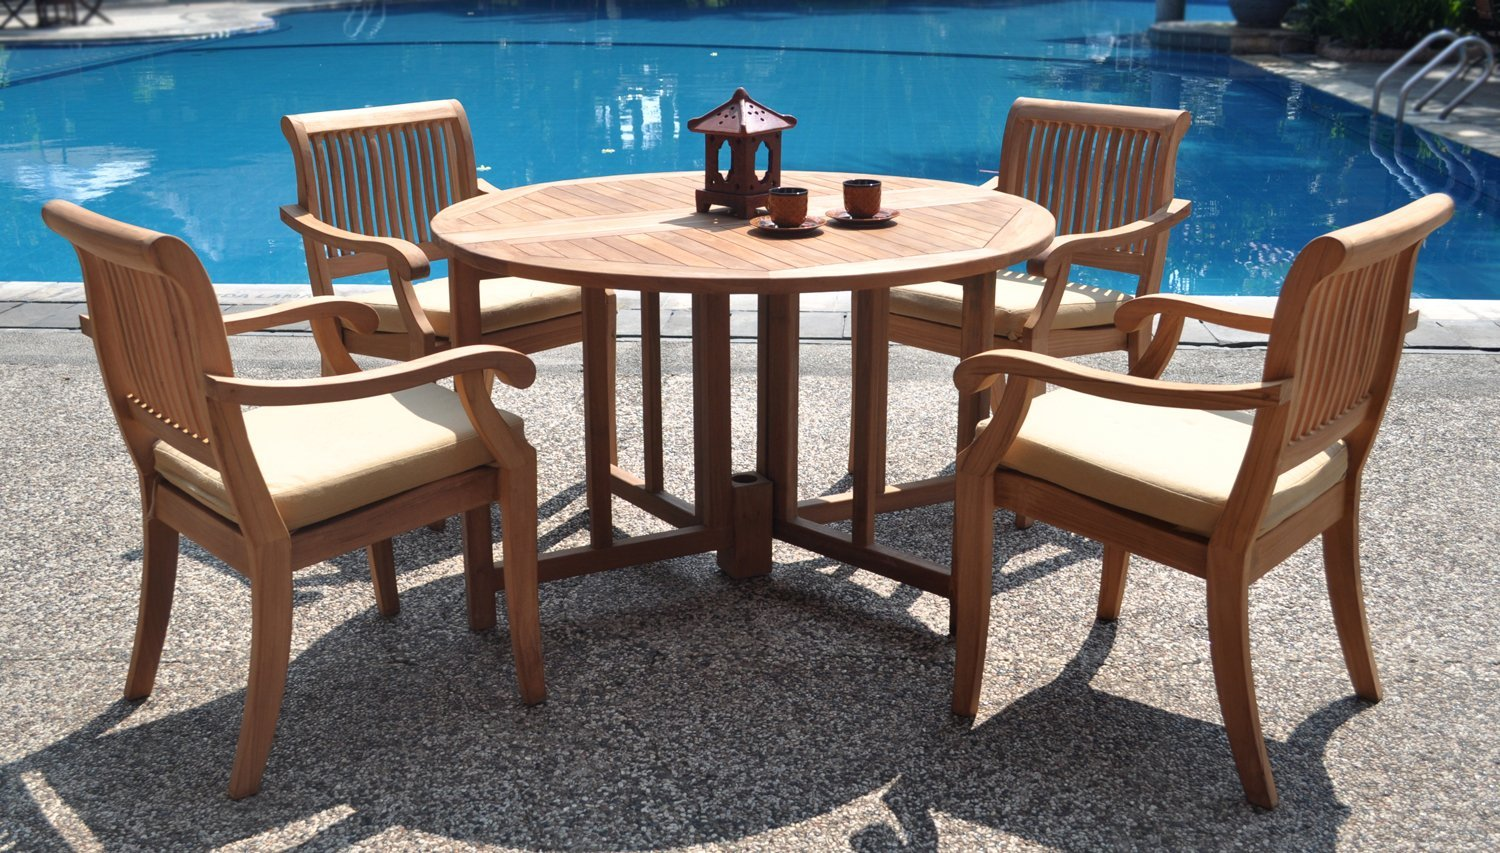 Master Should You Treat Teak Patio Furniture With Teak Oil? ... teak wood outdoor furniture